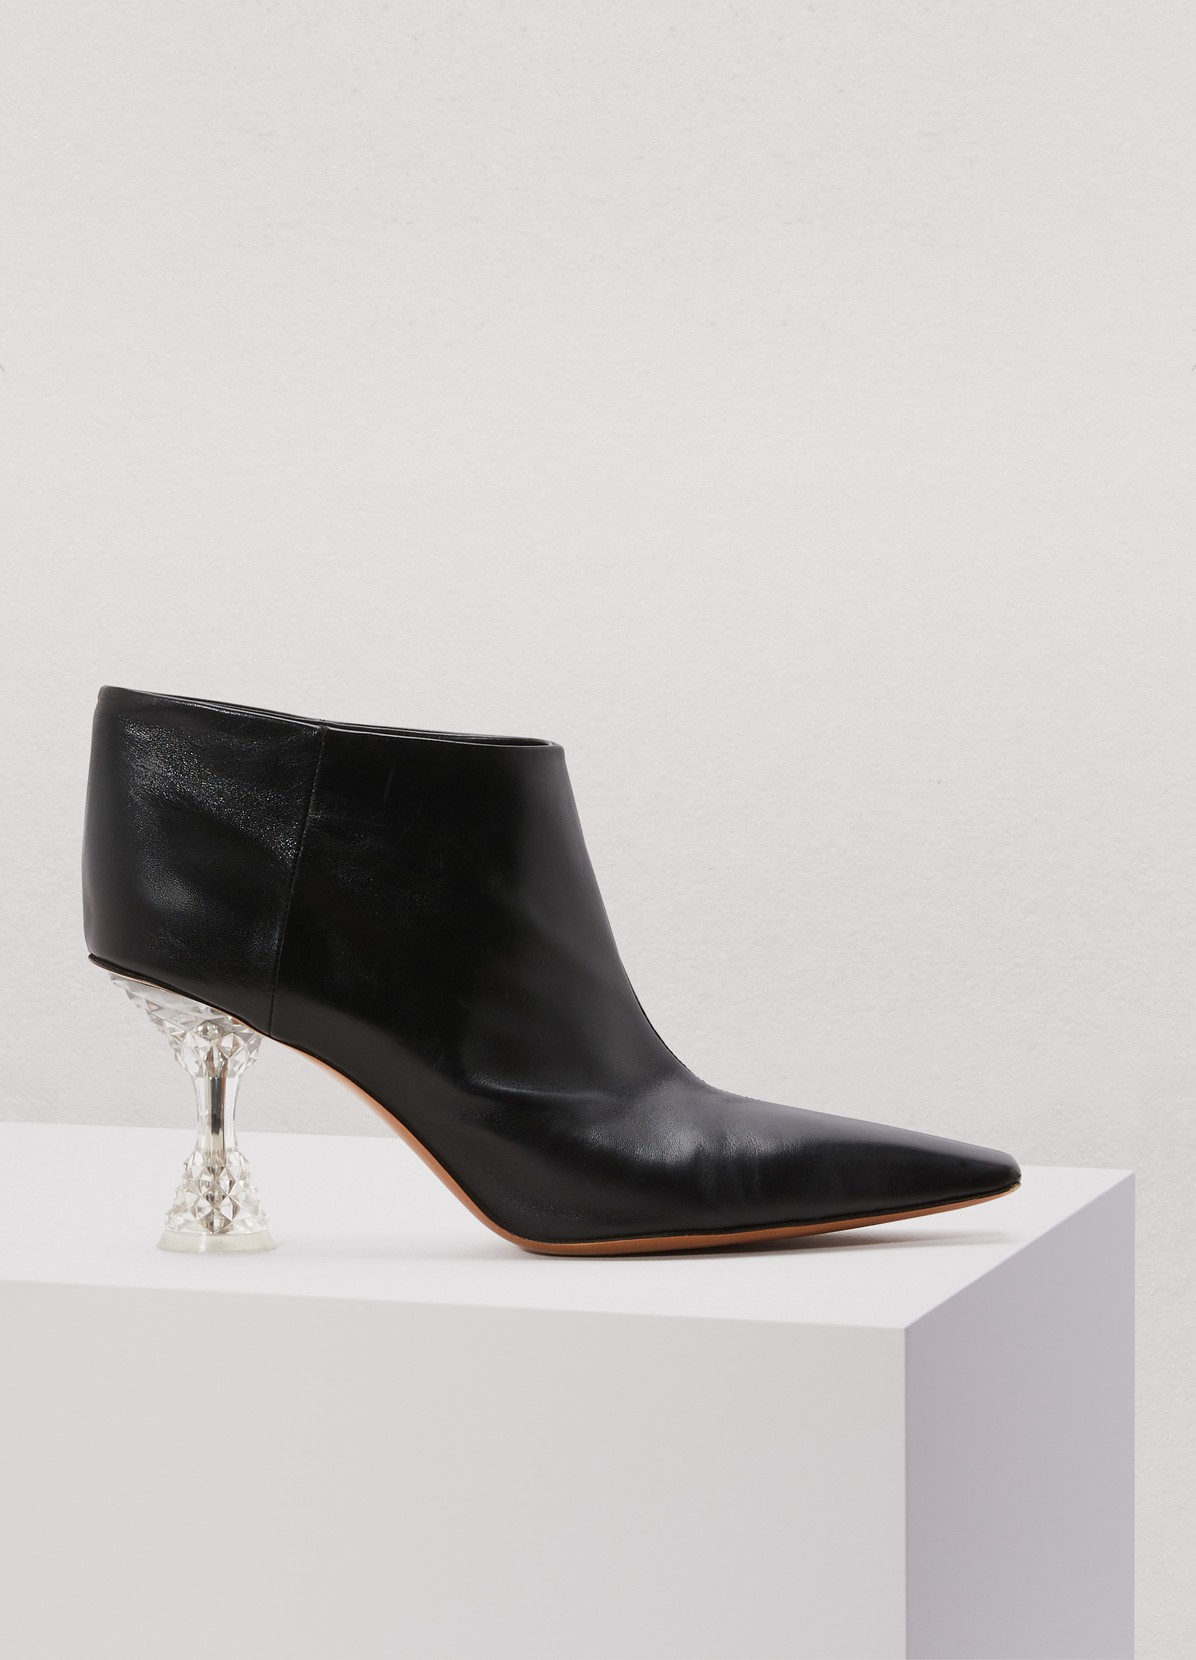 Facetted heel ankle boot in kidskin by Celine, available on 24sevres.com Kendall Jenner Shoes Exact Product